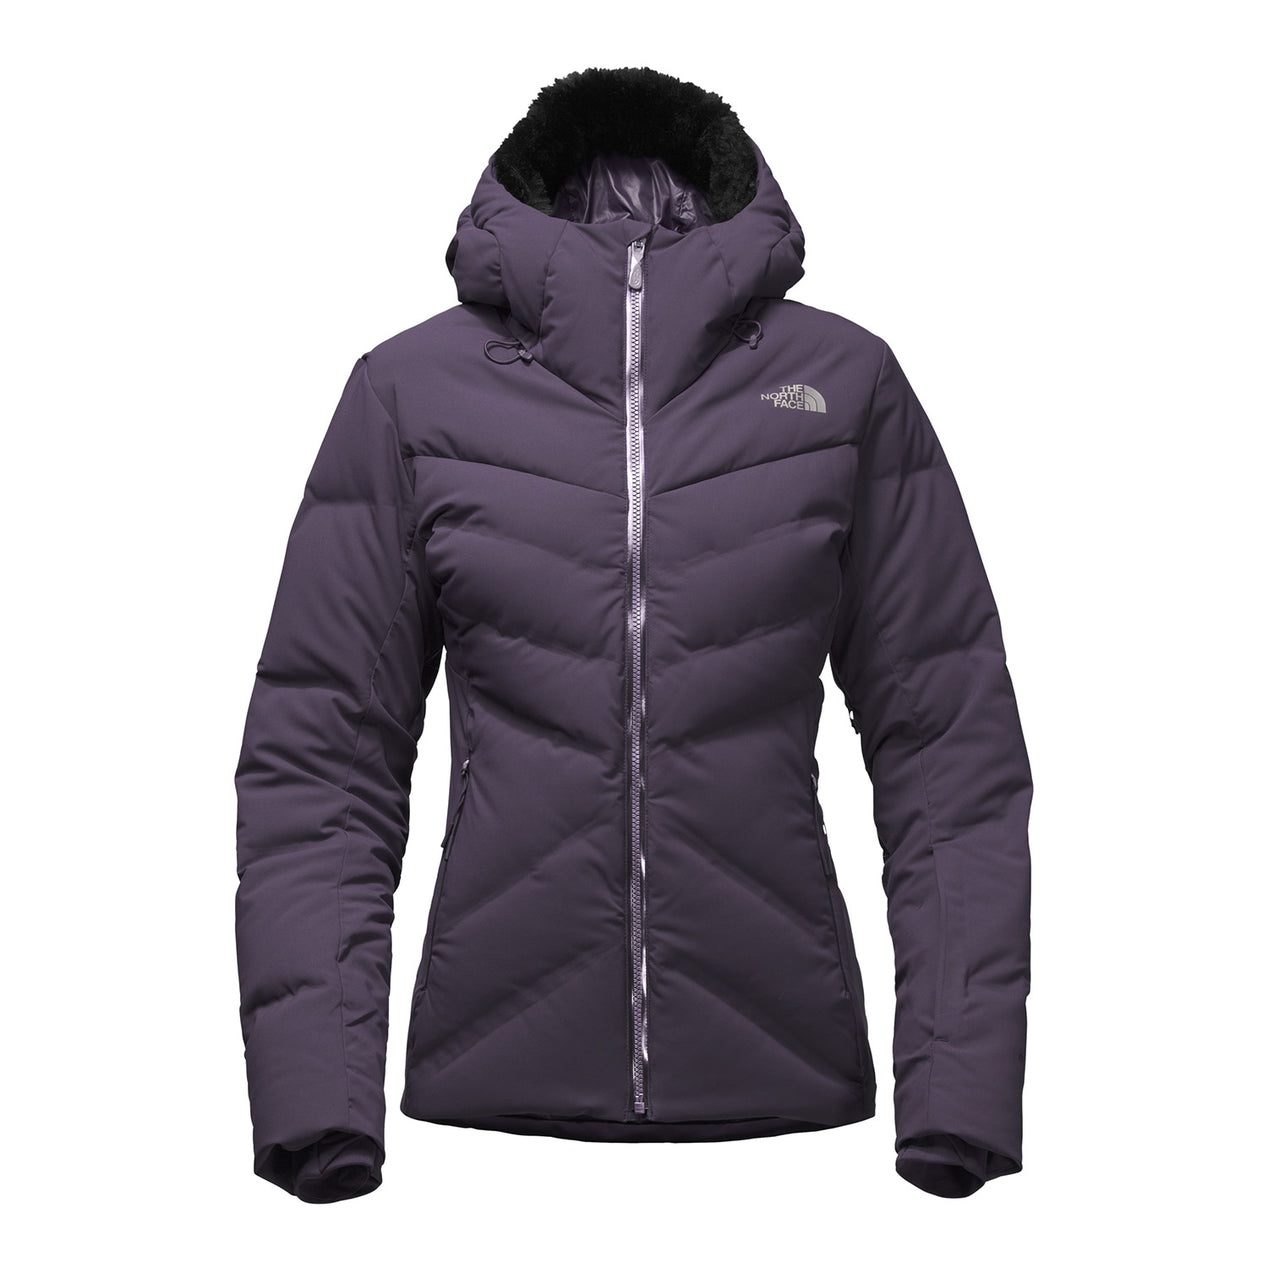 1ab77b783 The North Face Women's Cirque Down Jacket